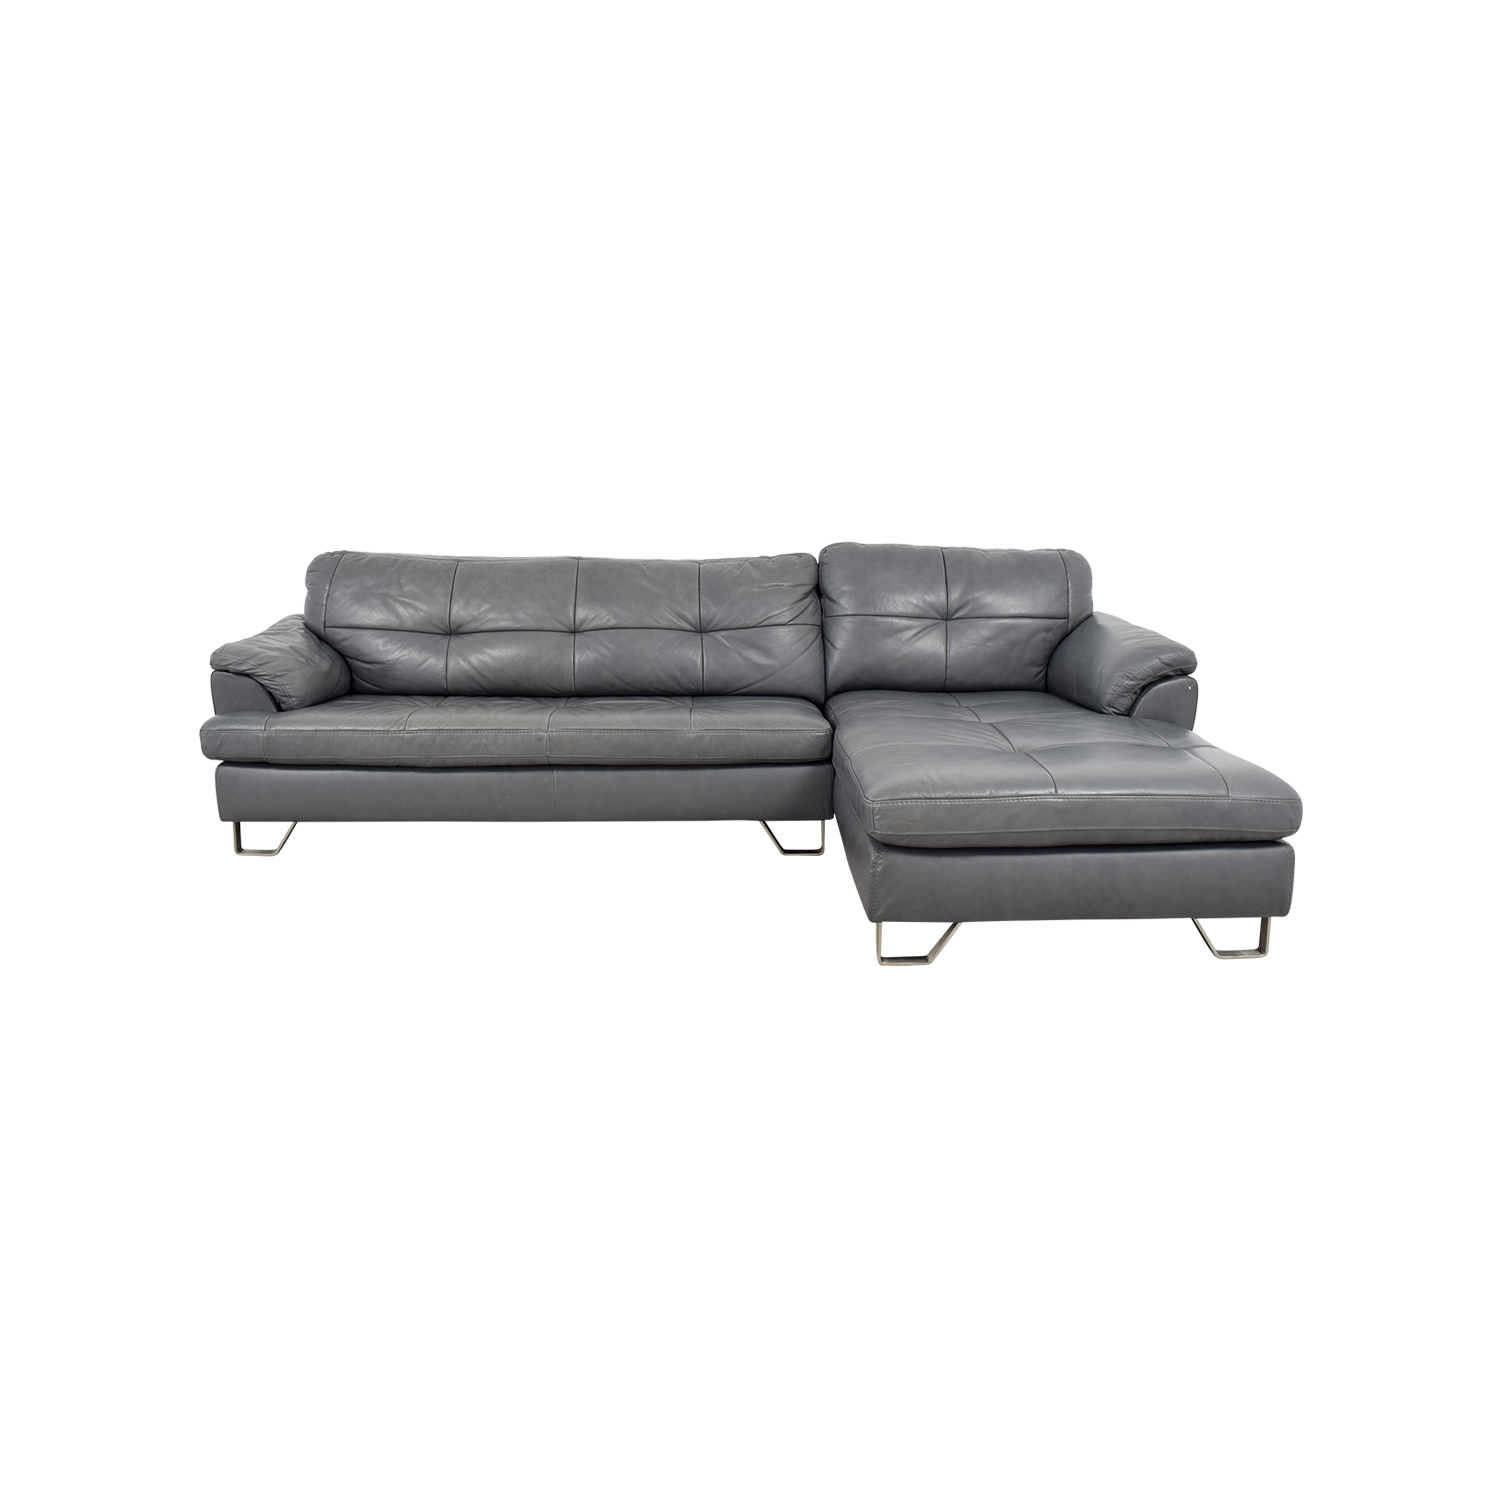 67 furniture furniture gray tufted